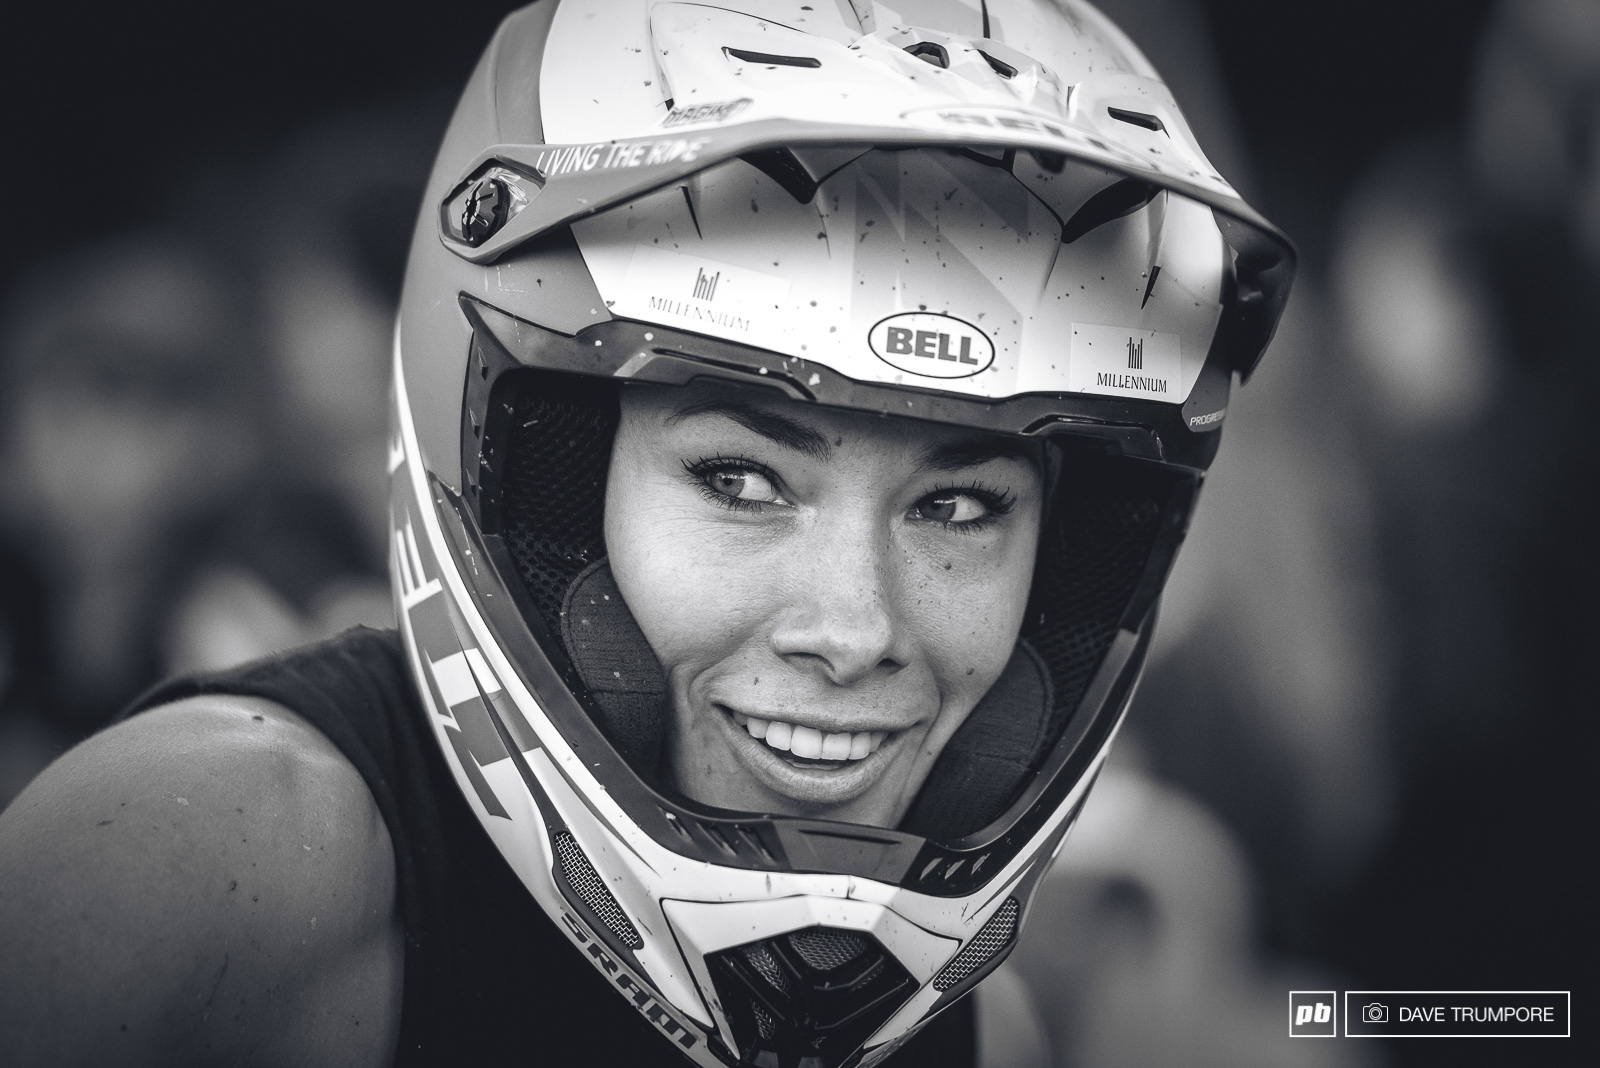 Back from a year focusing on the BMX and the Olympics Caroline Buchanan has her sights set on Queen of Crankworx for 2017.